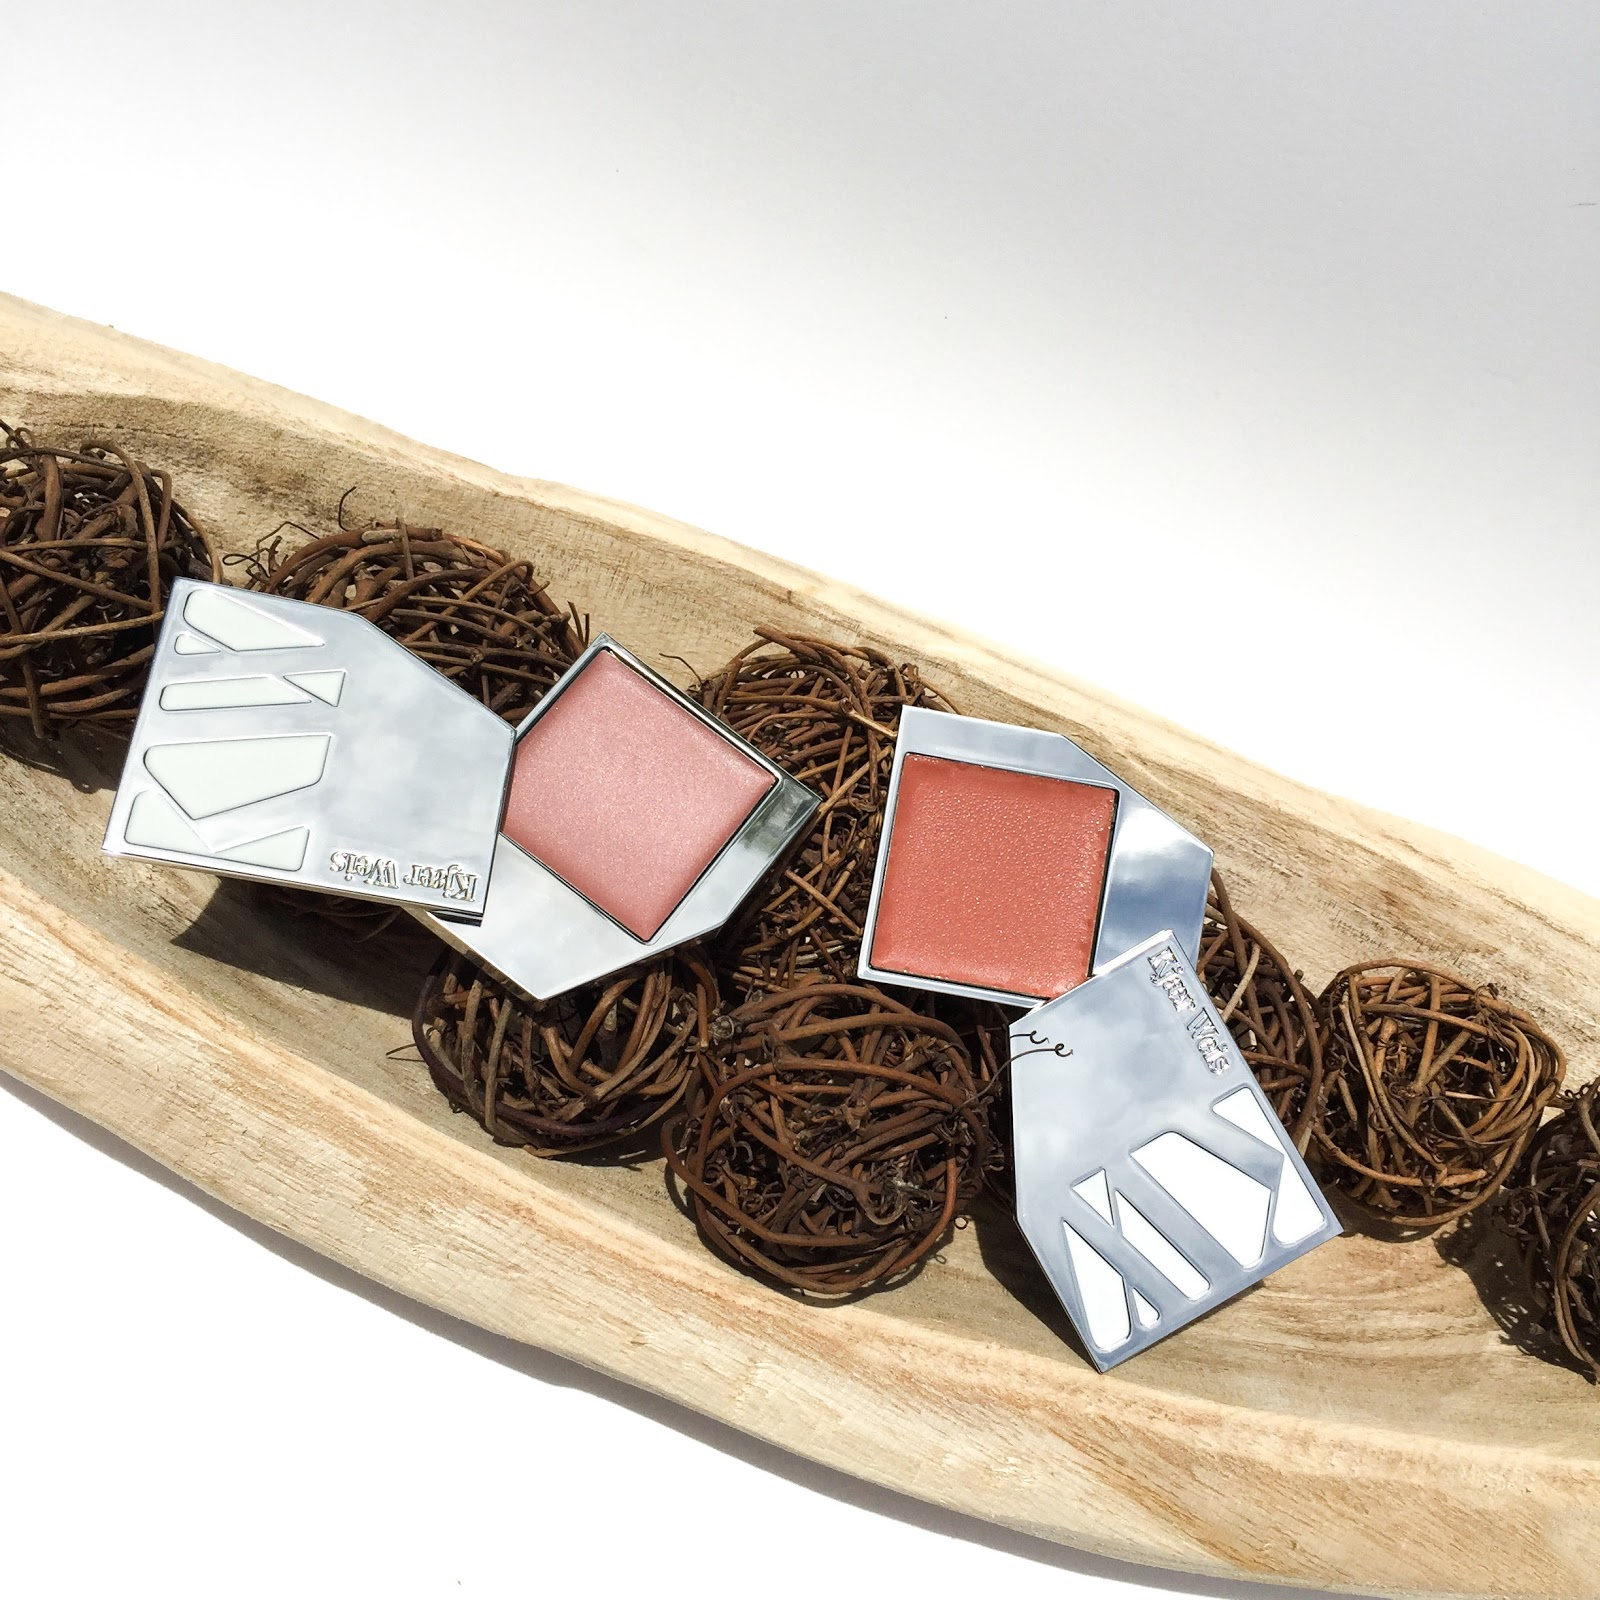 Kjaer Weis Cream Blush Abundance Desired Glow Review Swatches The Beauty Endeavor